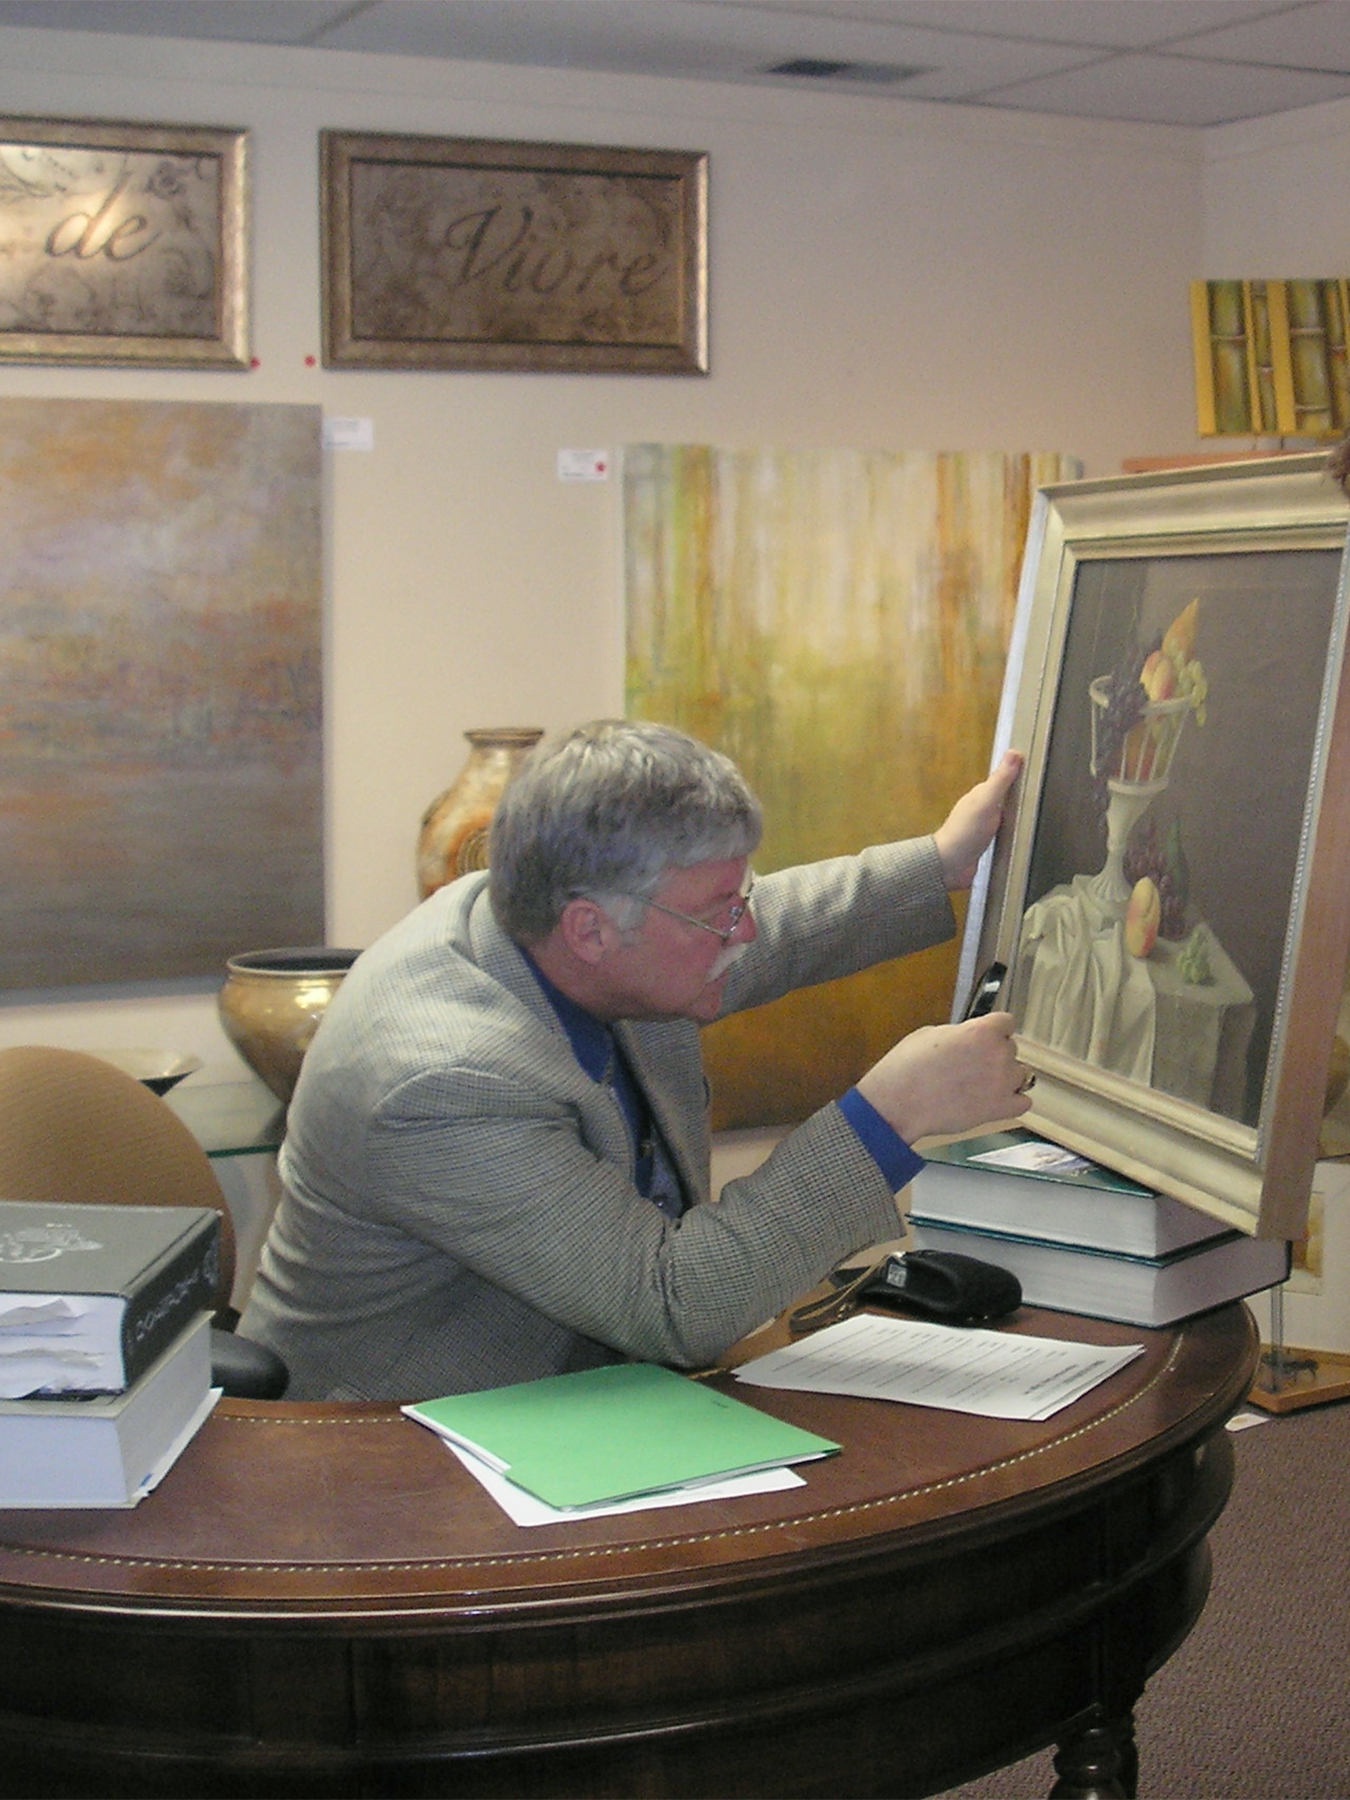 Broadway Galleries guest appraiser inspecting a painting